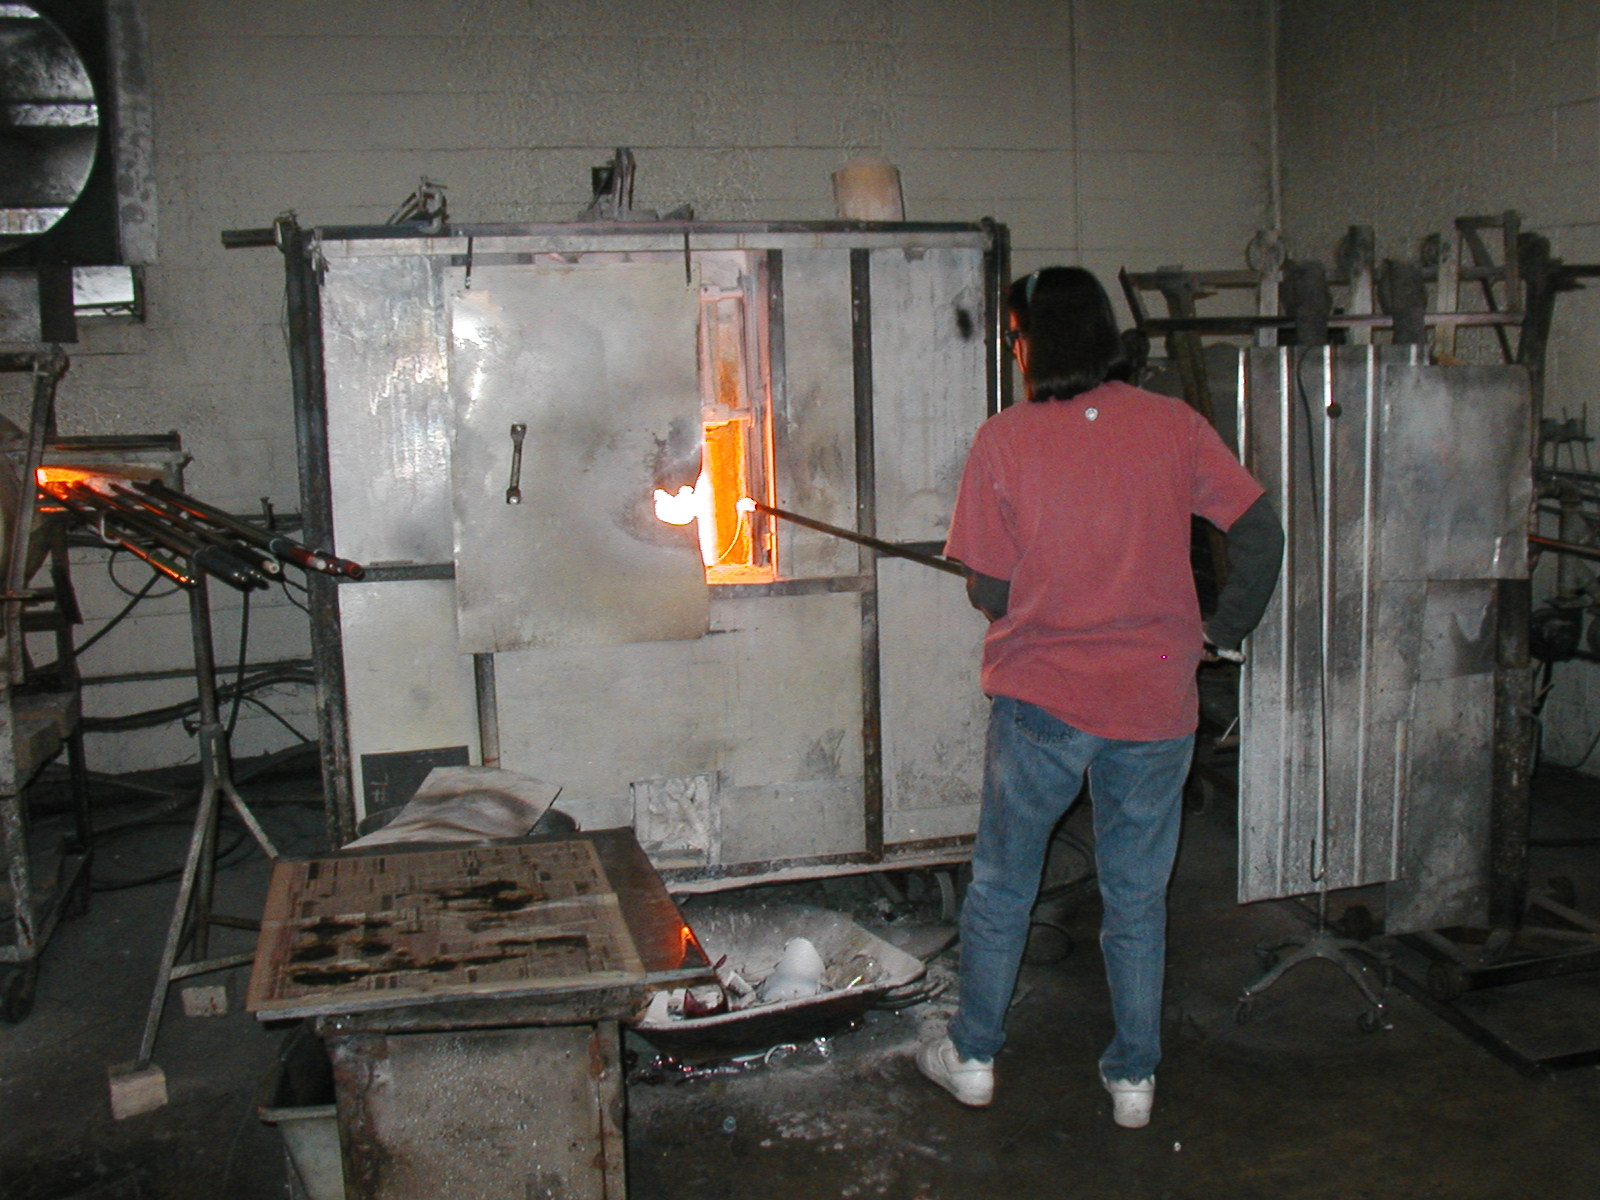 Glassblower.Info - Joel Bless Glasslight Glassblowing class January 18 2004 #162